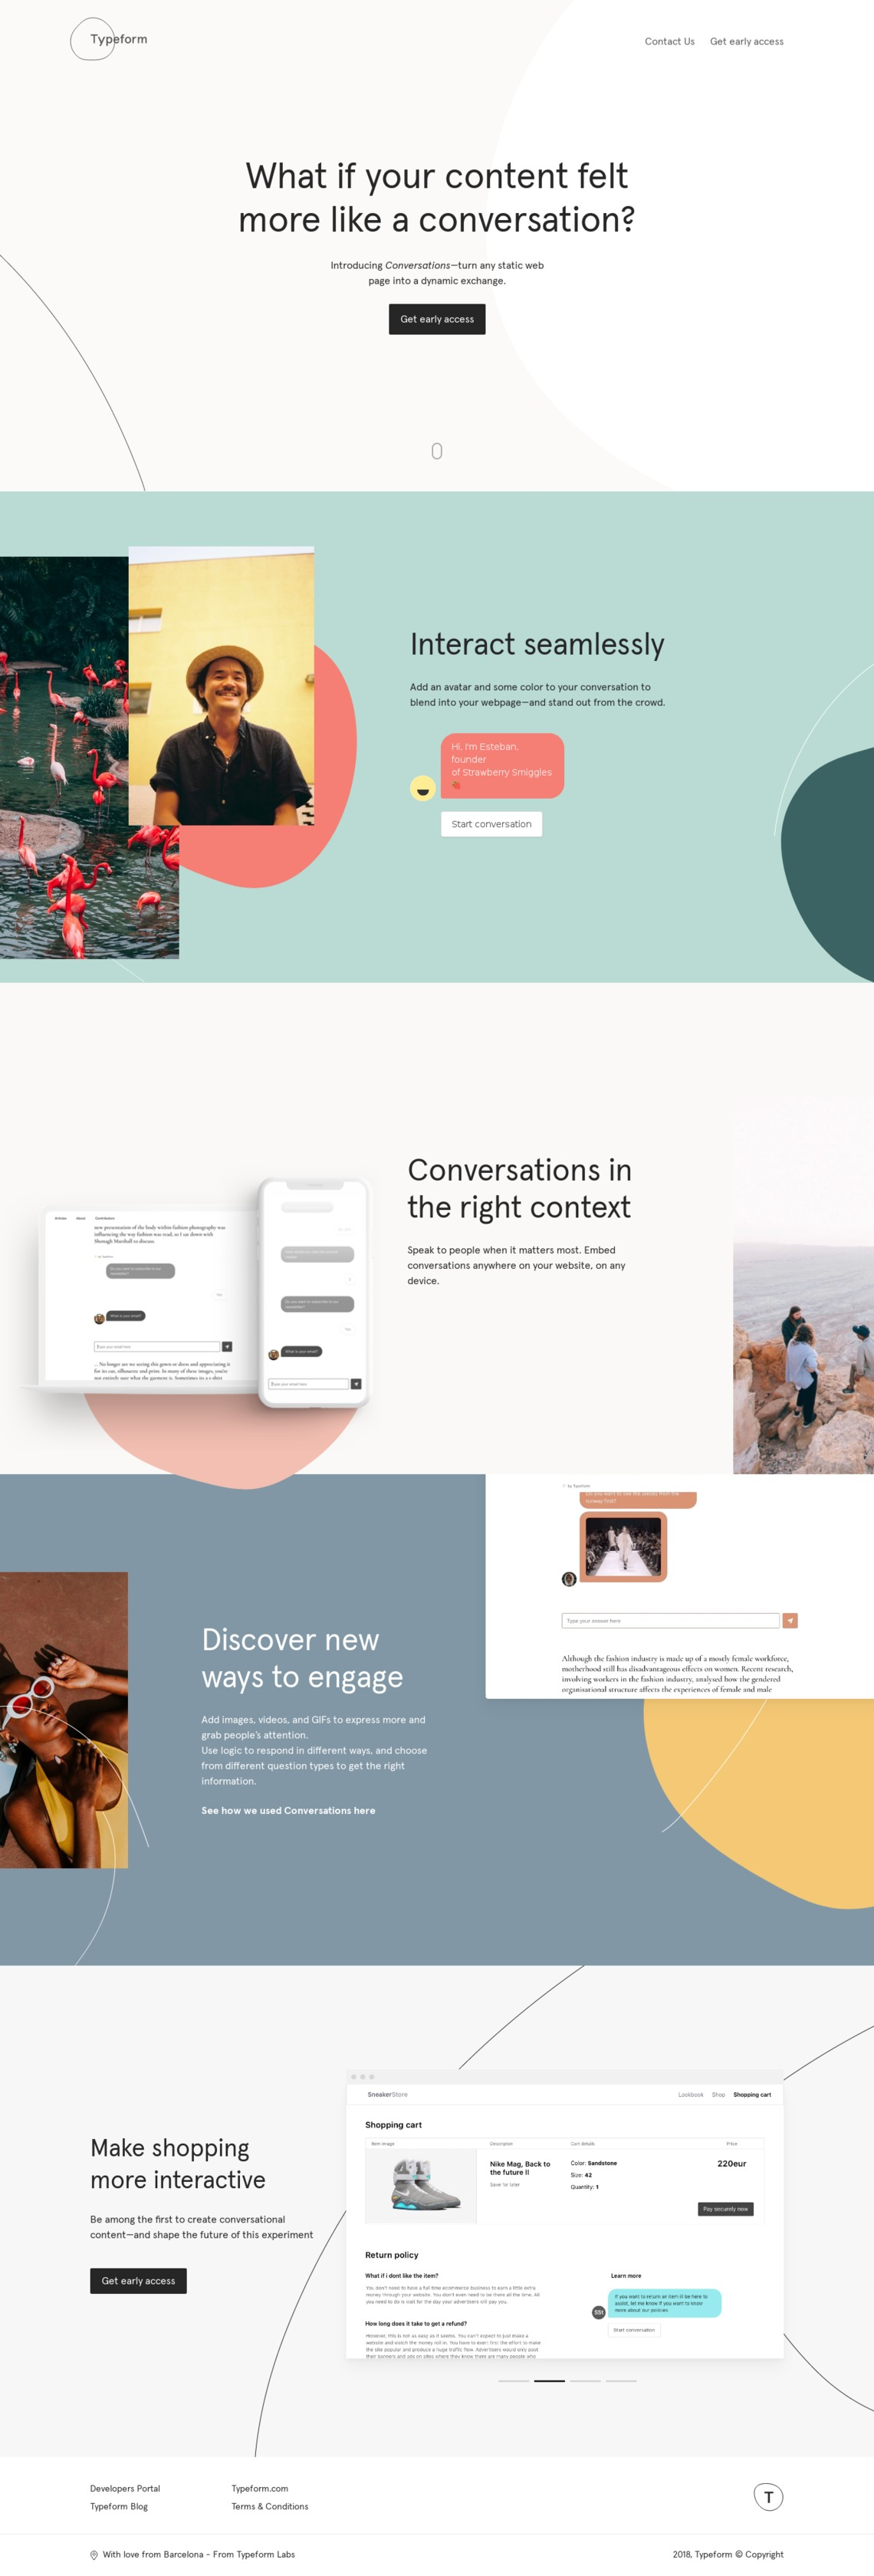 Conversations by Typeform